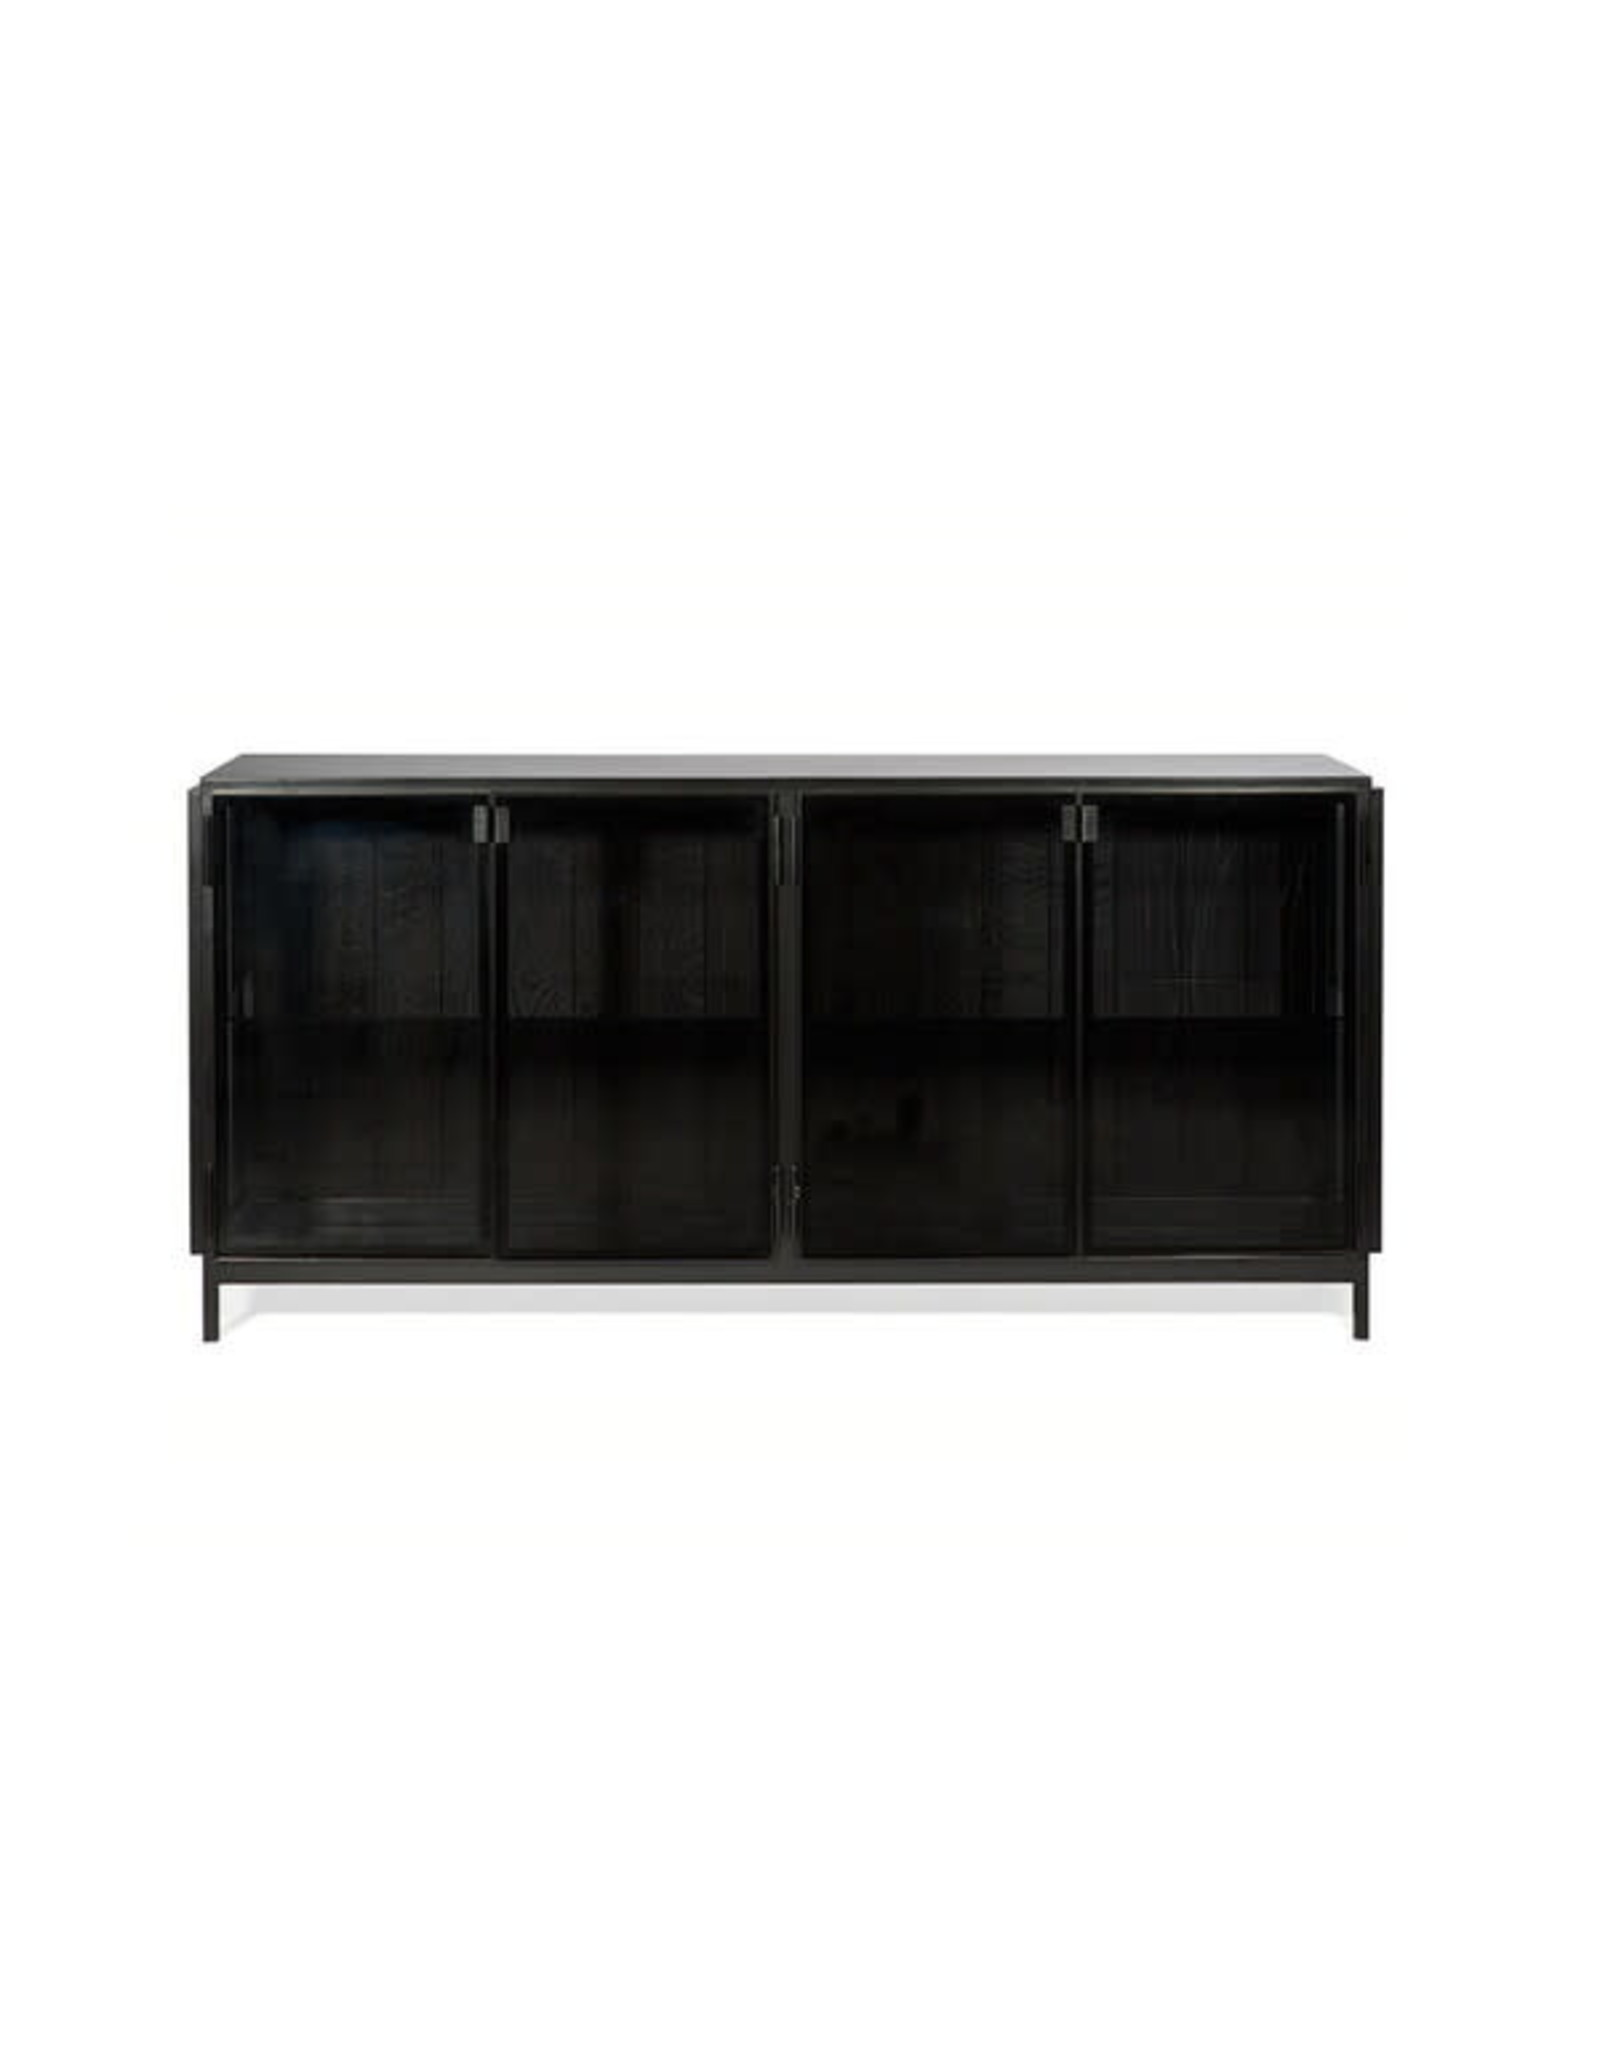 Ethnicraft Anders sideboard - 4 doors